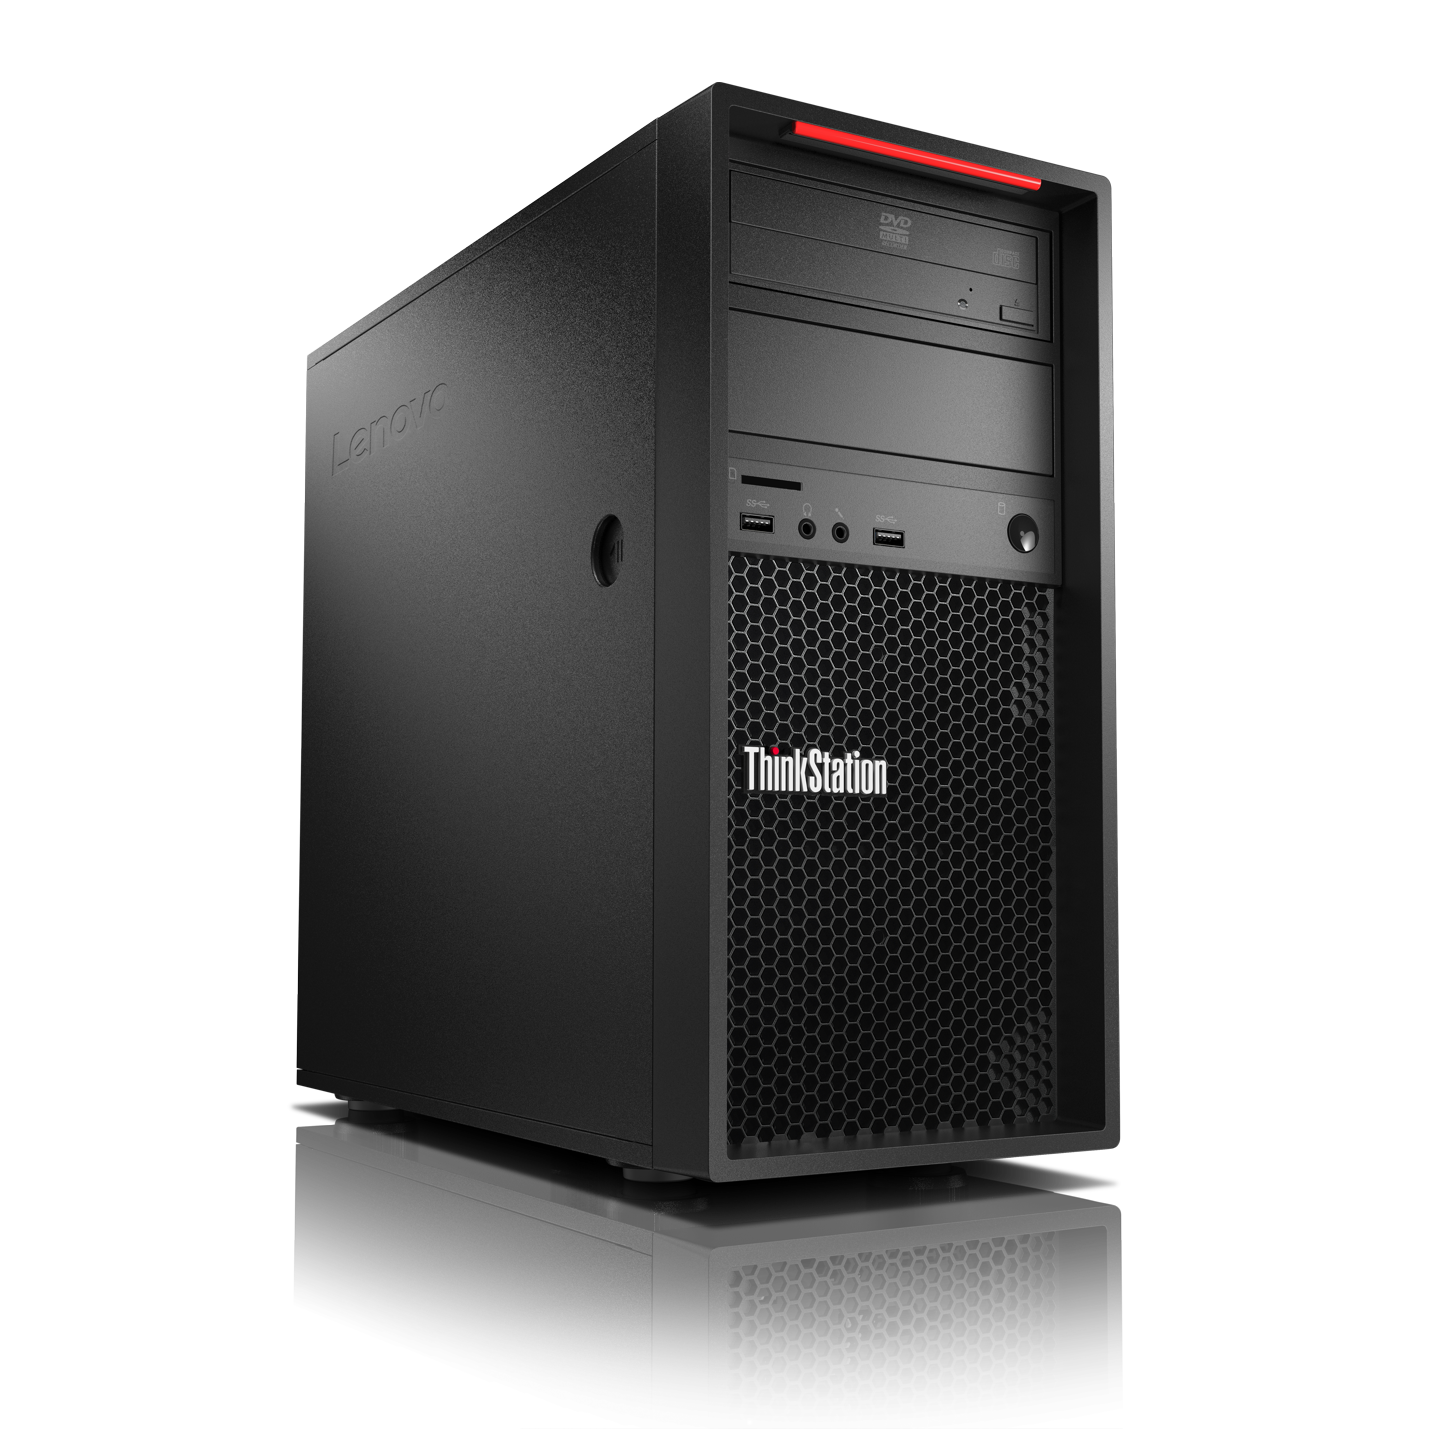 30BX004KXS Lenovo ThinkStation P520c